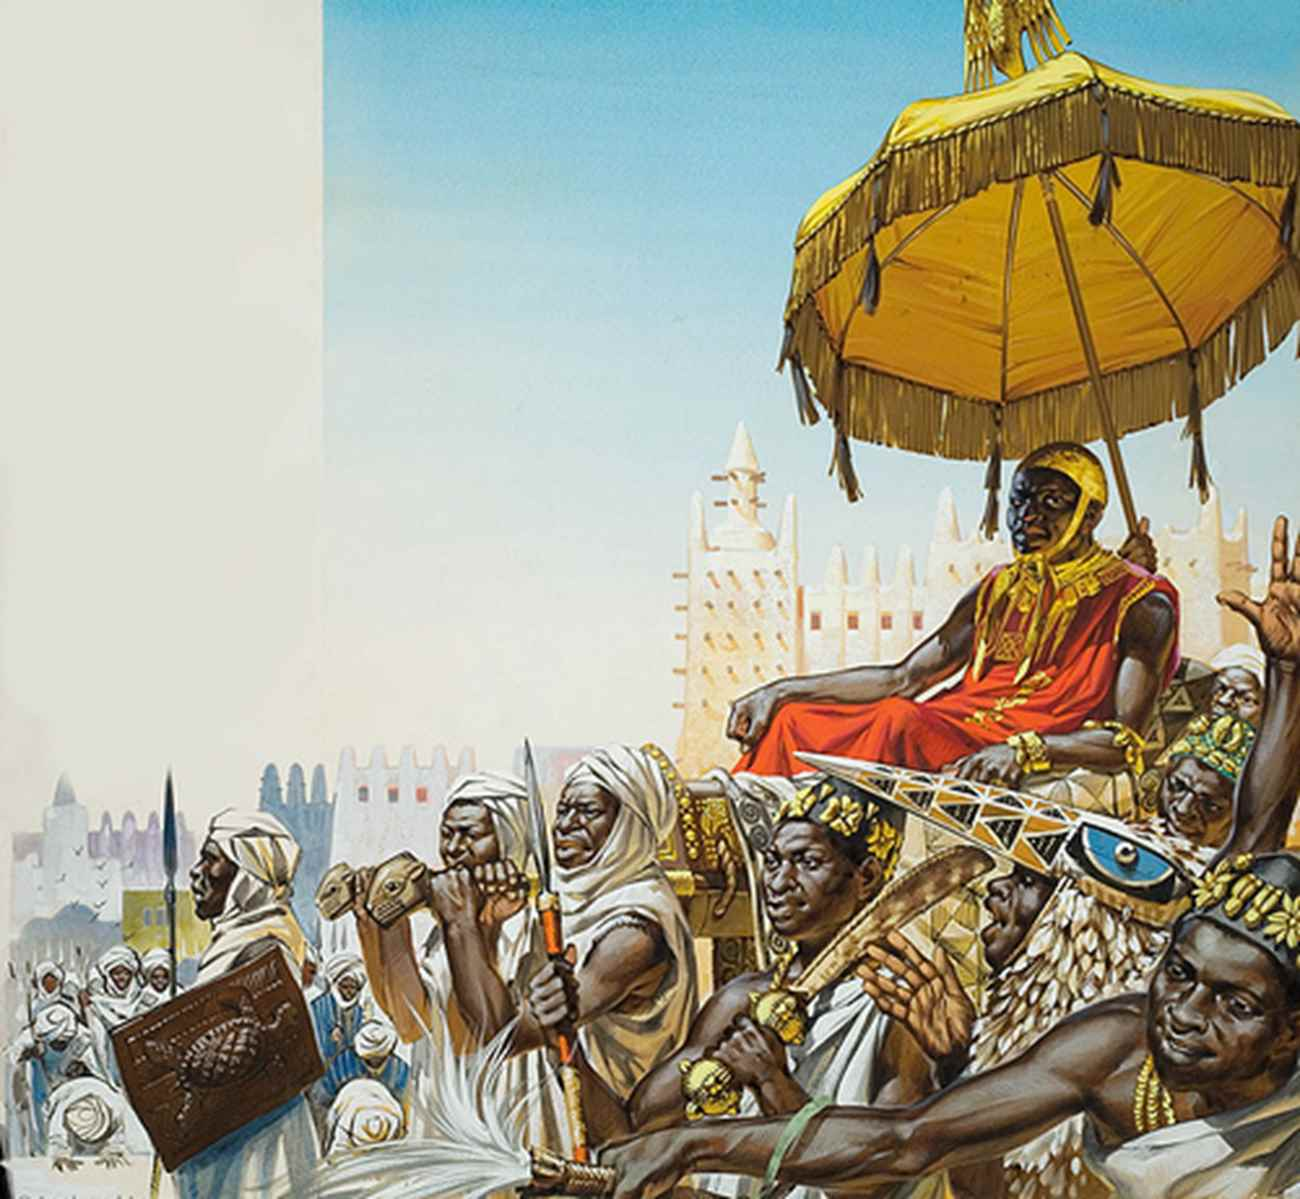 a history of mali one of the greatest african civilzations Philosophy in africa has a long history dating from pre-dynastic egypt and continuing through the birth of christianity and islam one of the earliest works of political philosophy was the maxims of ptah-hotep , which were taught to egyptian schoolboys for centuries.